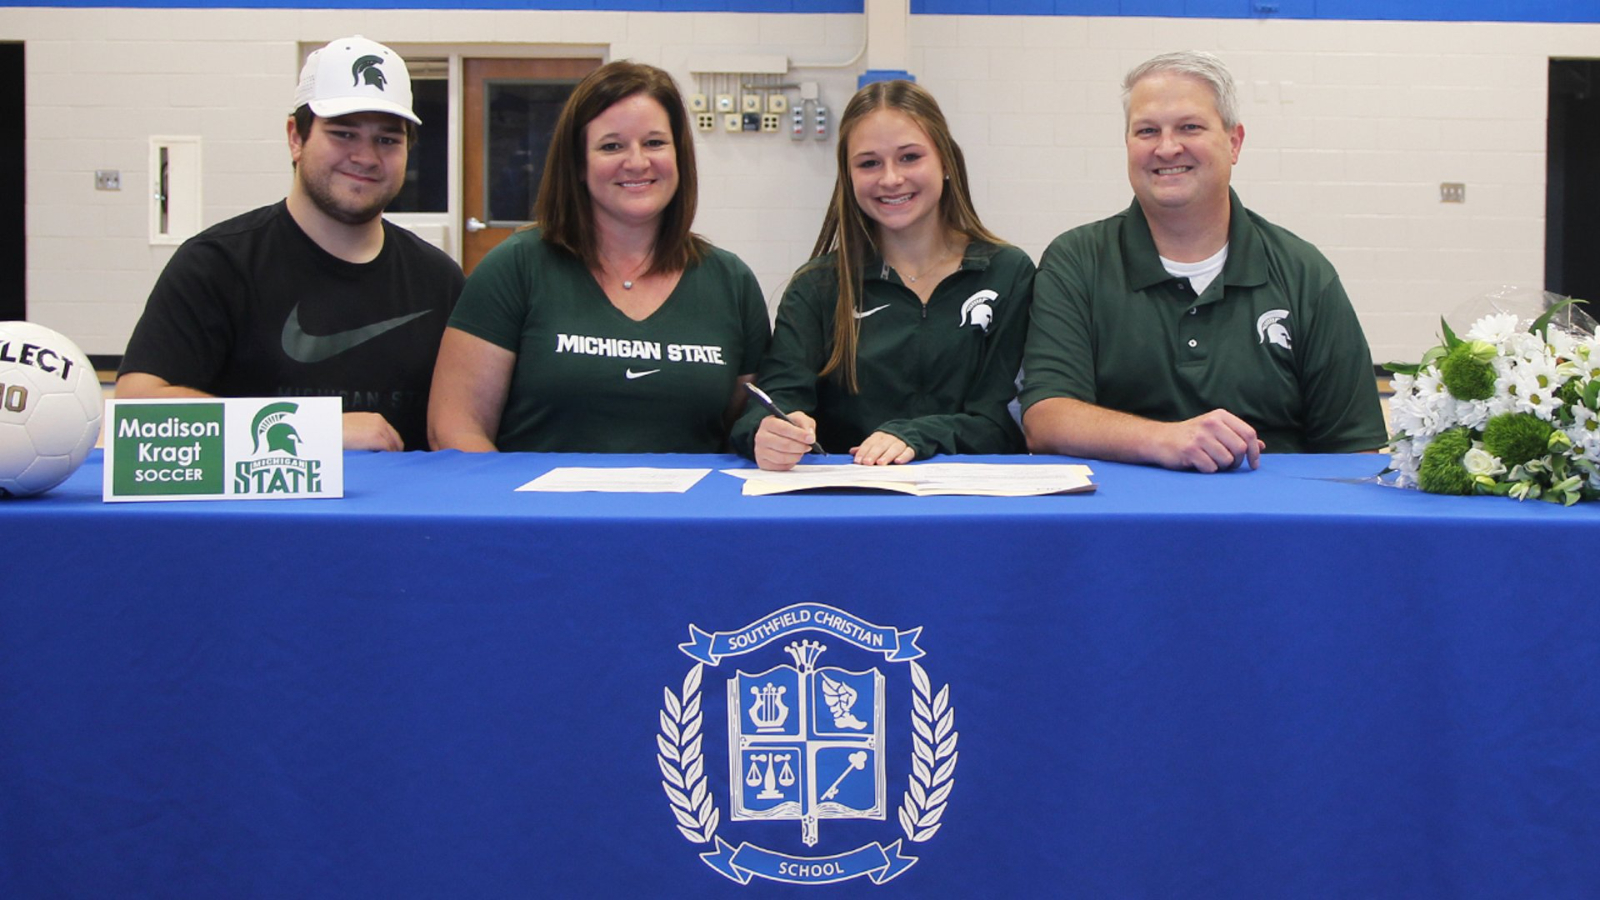 Maddie Kragt Signs to Play Soccer at Michigan State